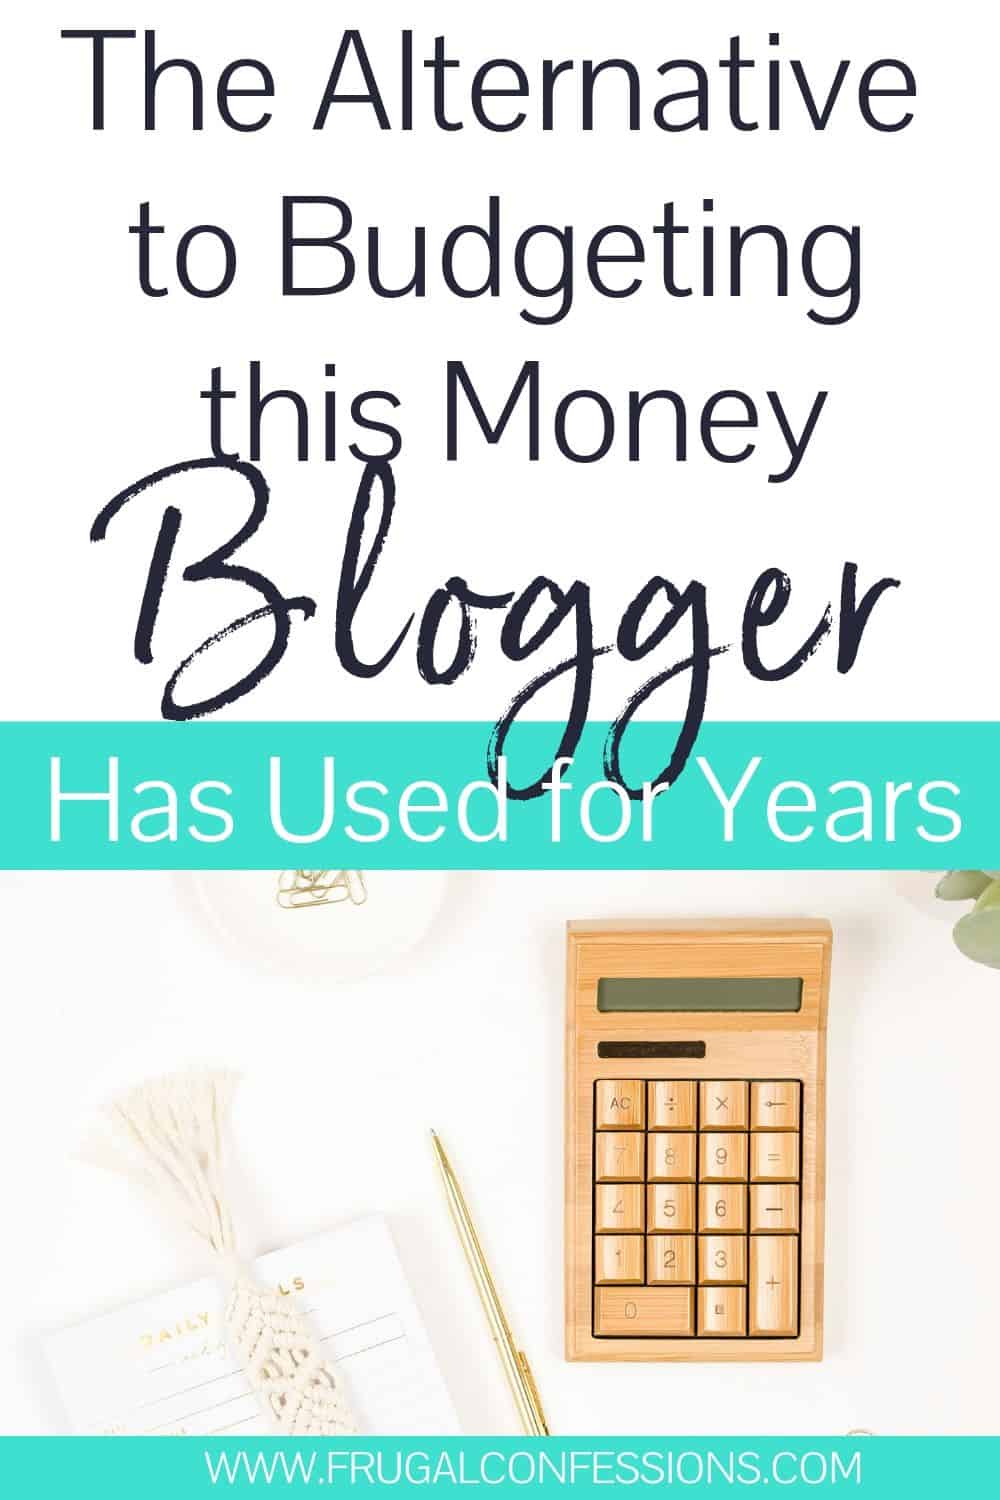 "wooden calculator on white desk, text overlay ""the alternative to budgeting this money blogger has used for years"""